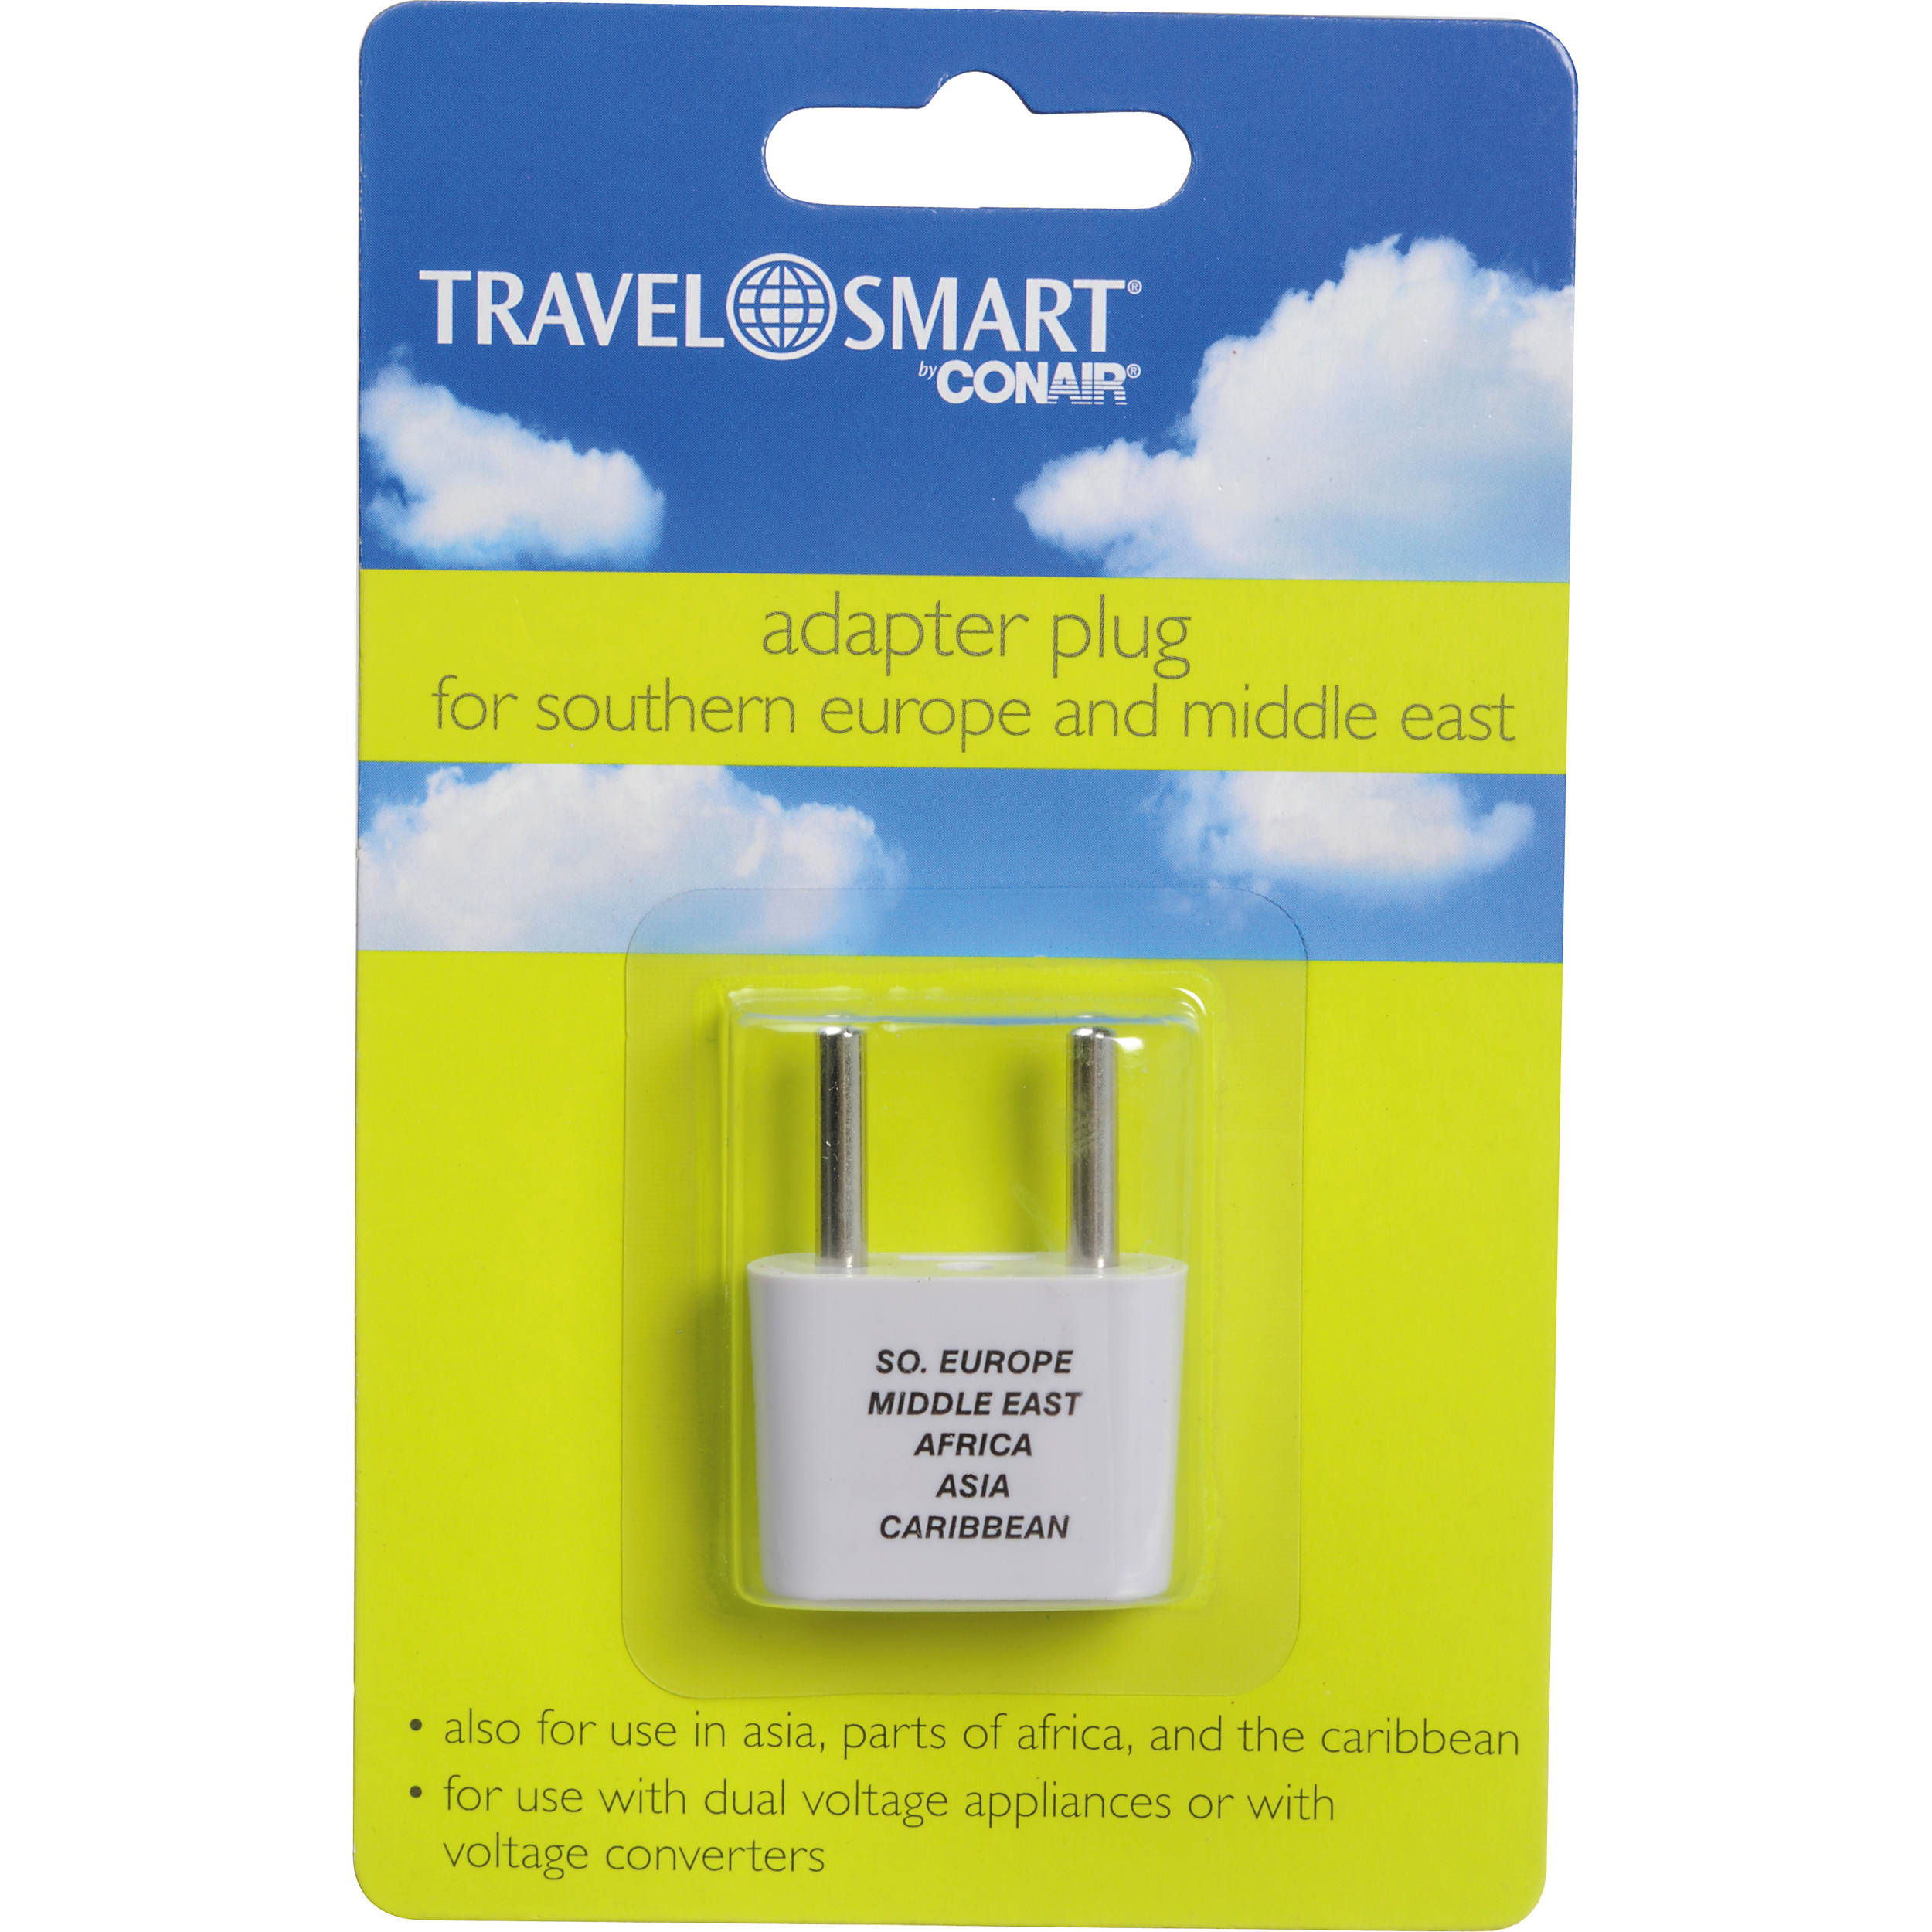 travel smart by conair nw1c adapter plug 2 prong usa nw1x b h